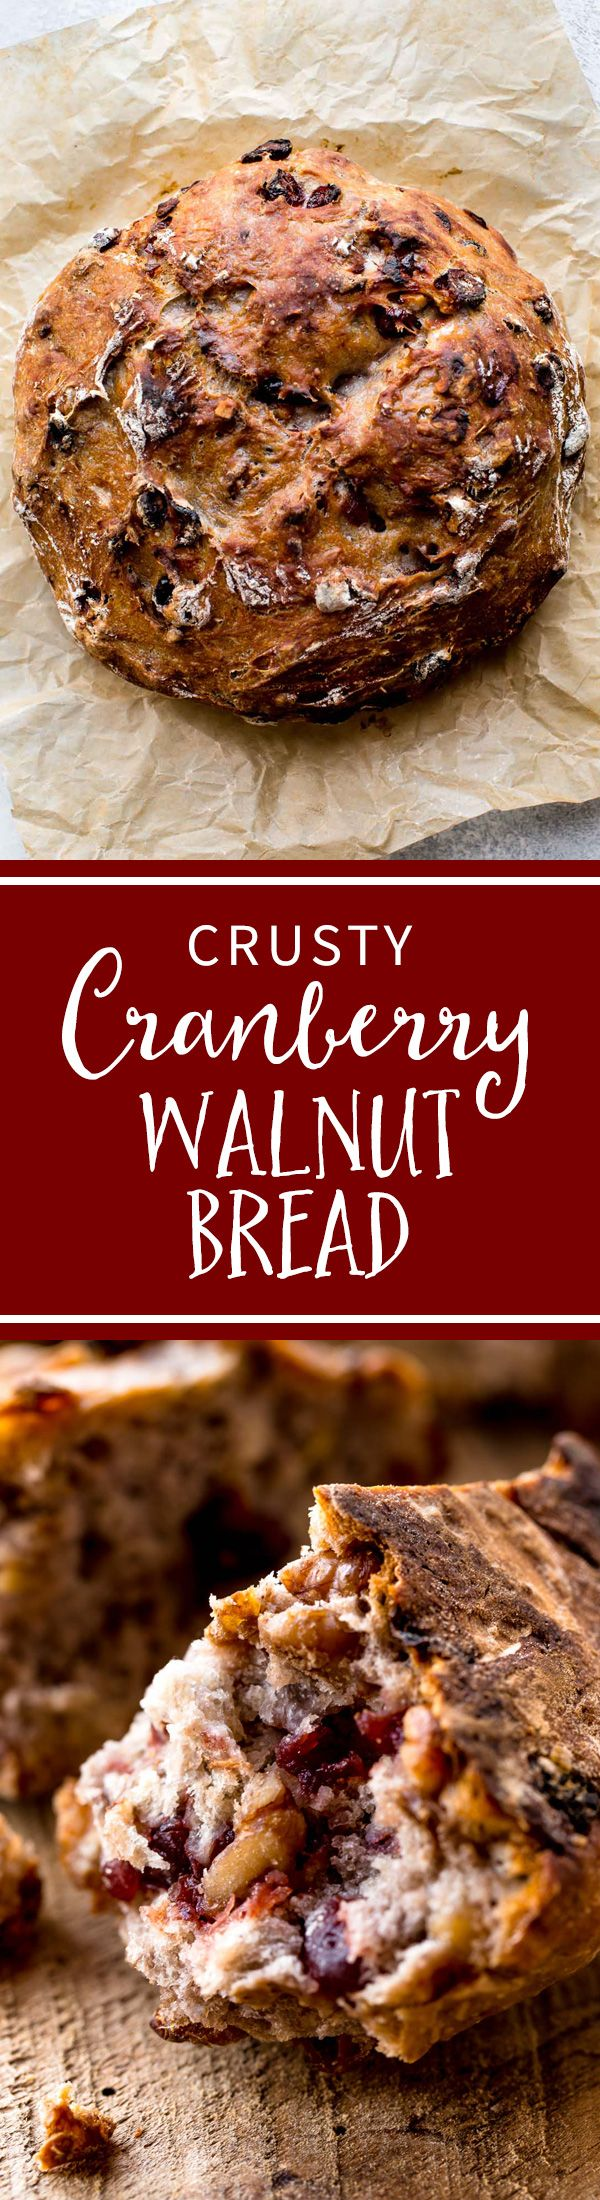 No-knead super crusty, soft, and EASY bread made in the dutch oven! Filled with dried cranberries and walnuts, the bread is delicious! Recipe on sallysbakingaddiction.com